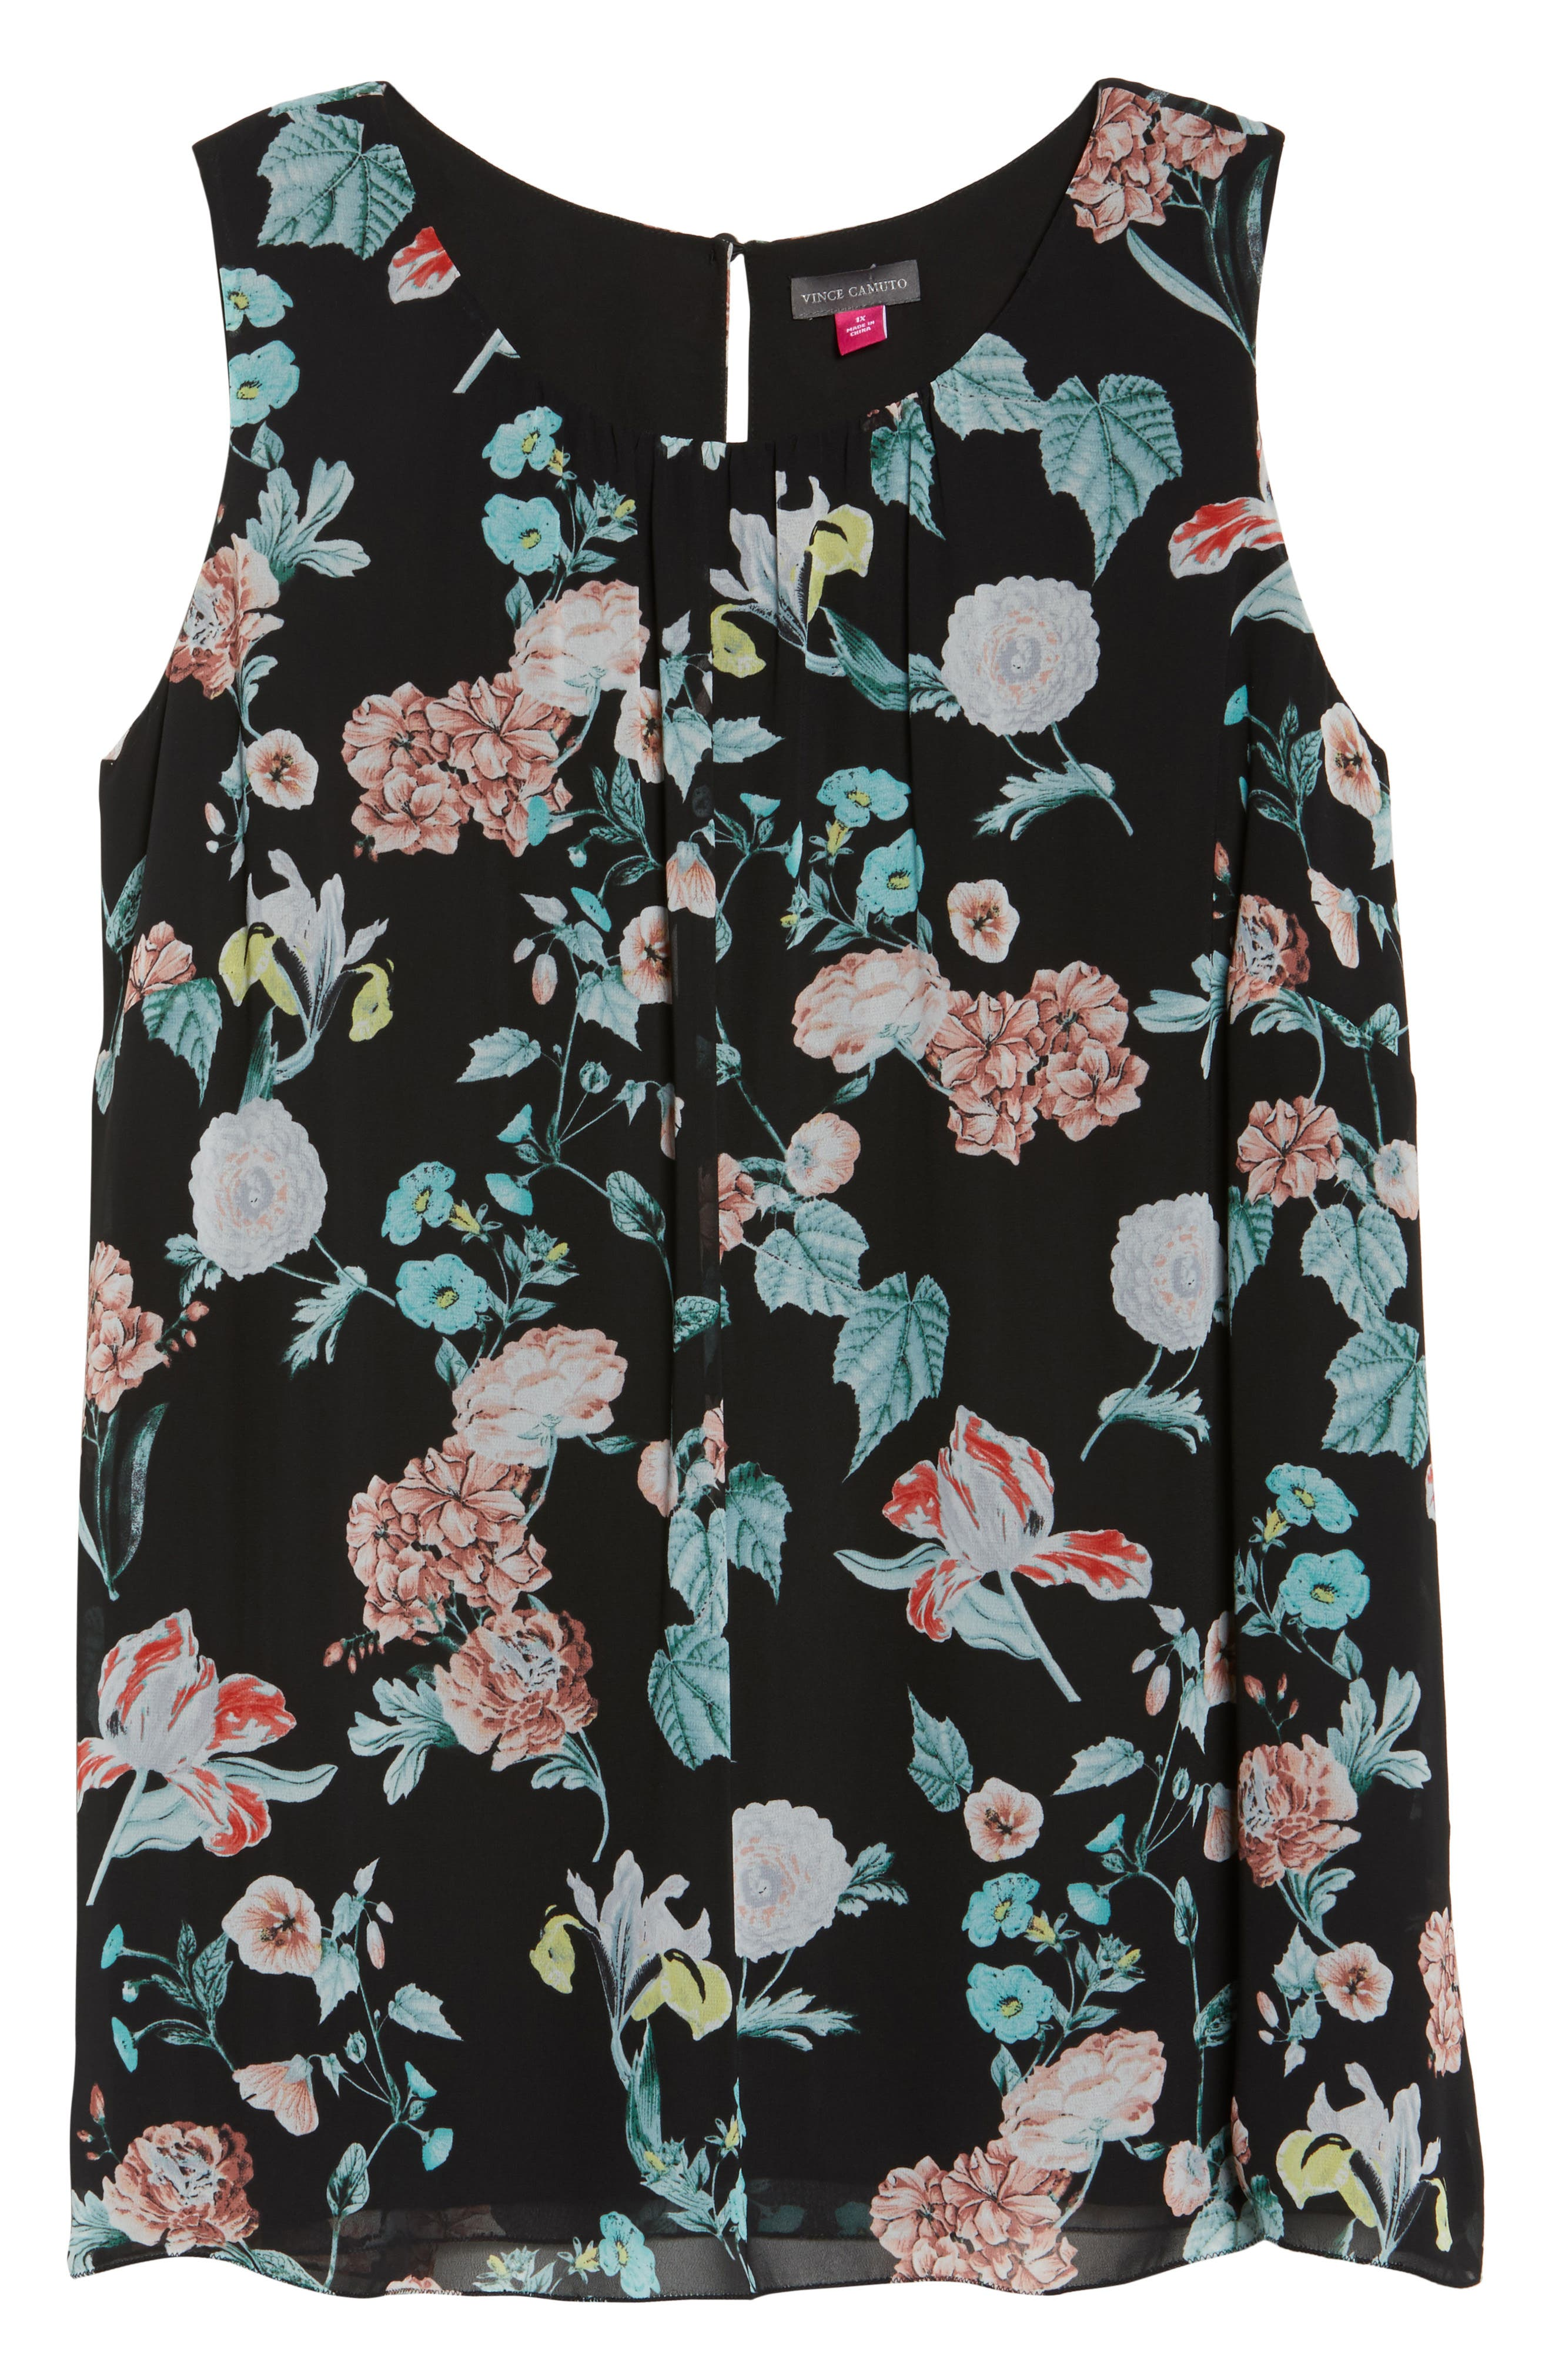 VINCE CAMUTO,                             Sleeveless Floral Gardens Top,                             Alternate thumbnail 6, color,                             010